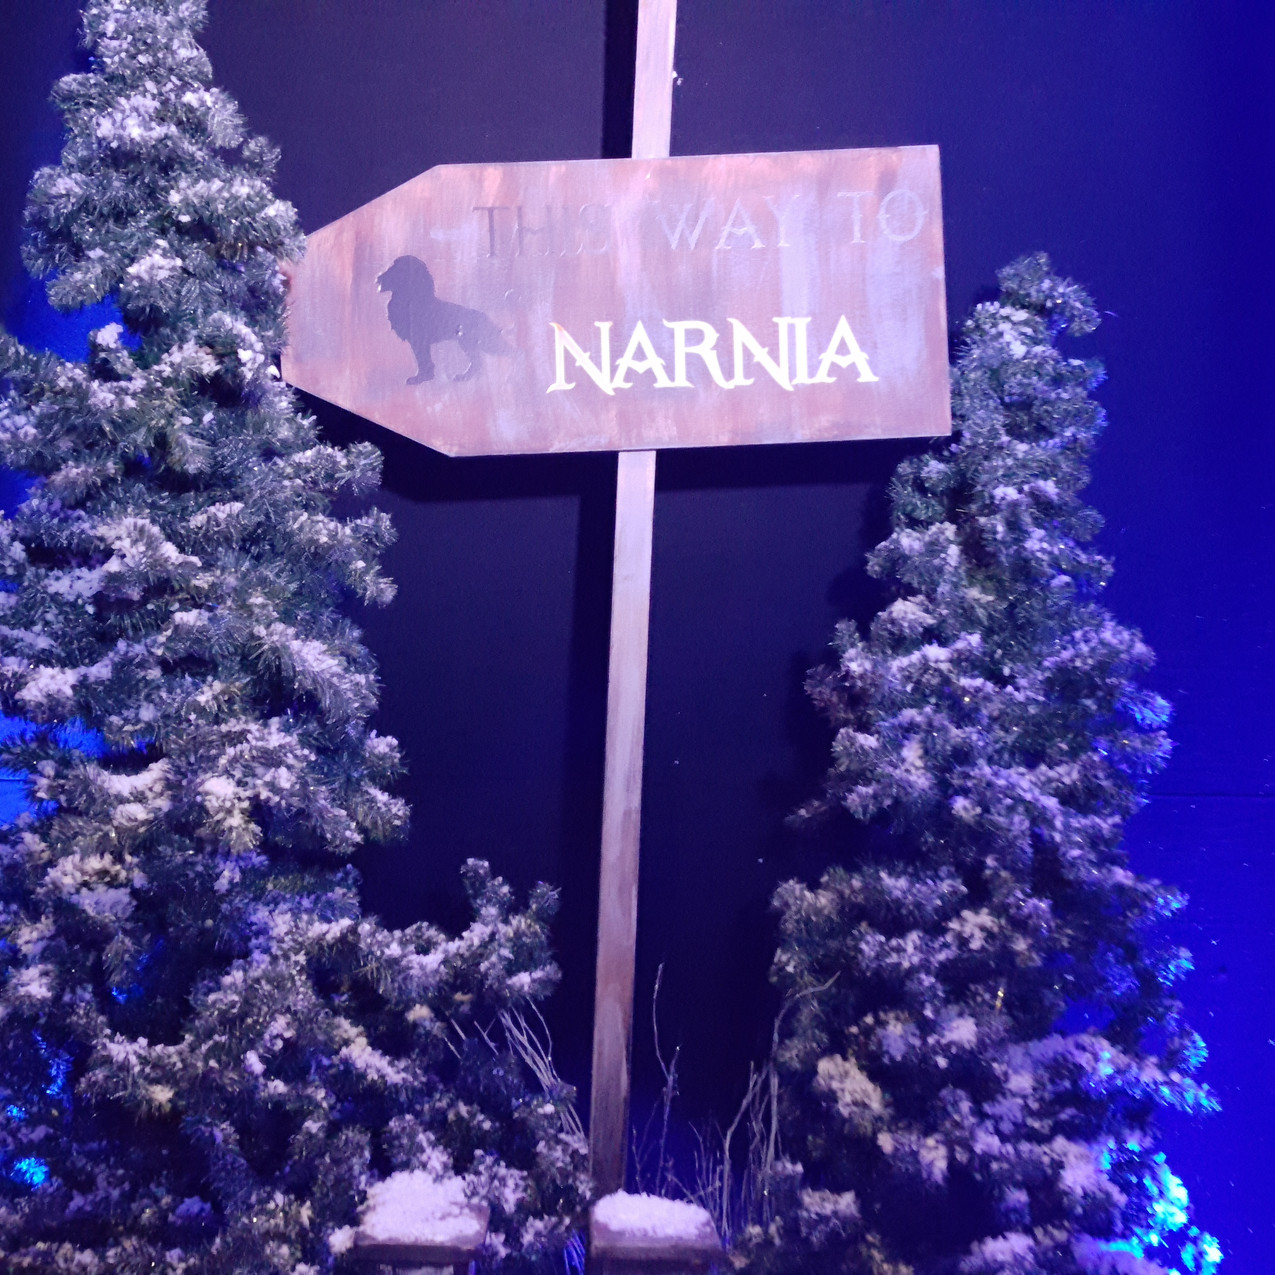 Narnia Themes/Props Staging Services